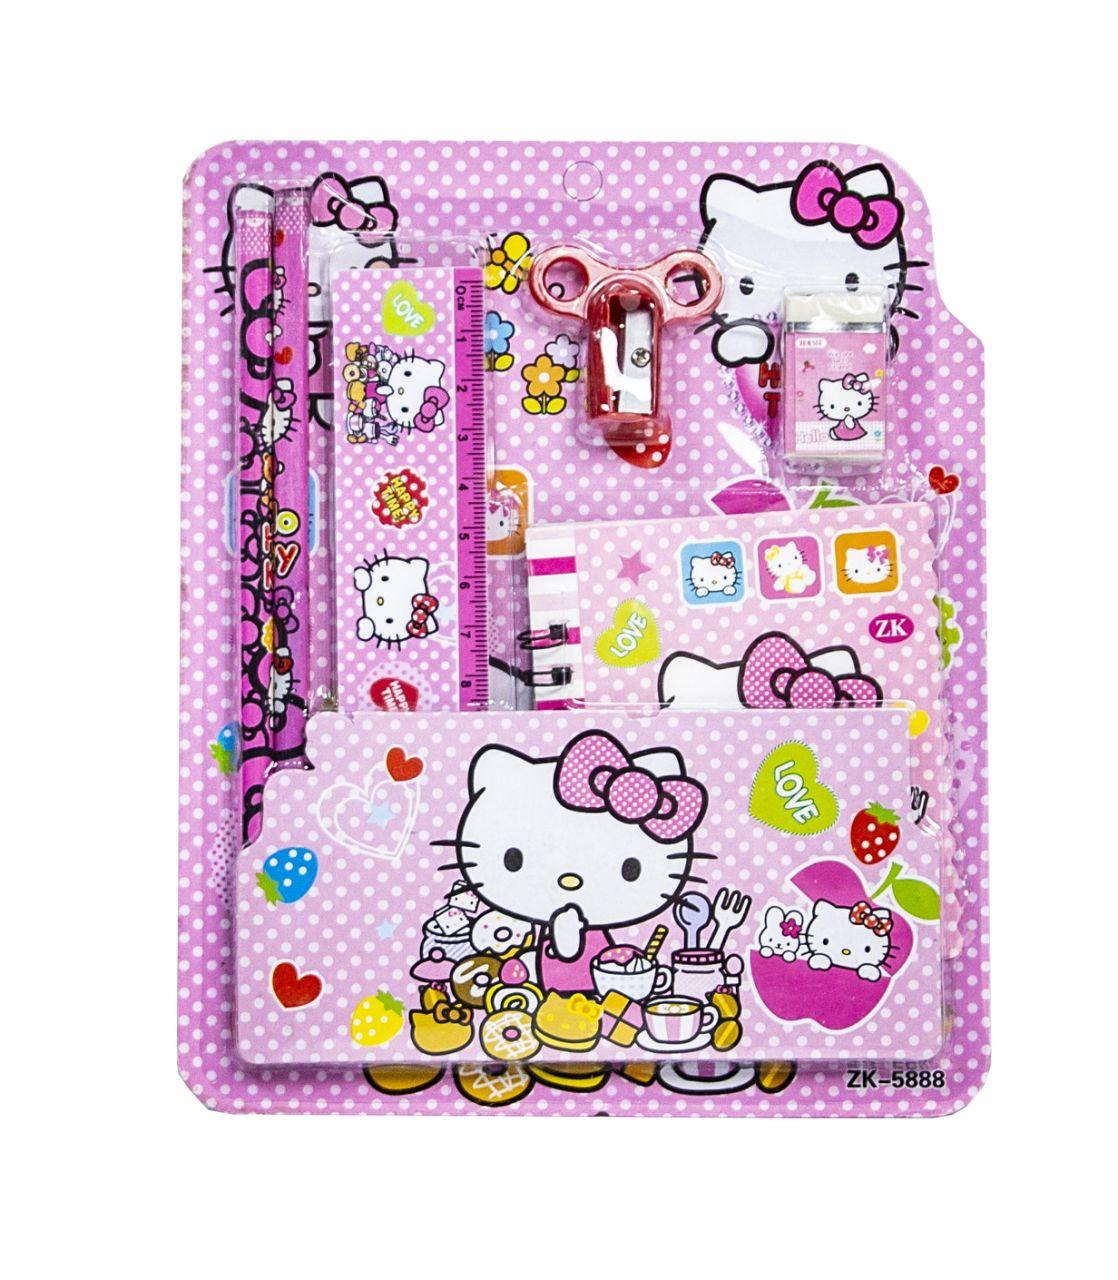 КАНЦЕЛЯРСКИЙ НАБОР HELLO KITTY 002781